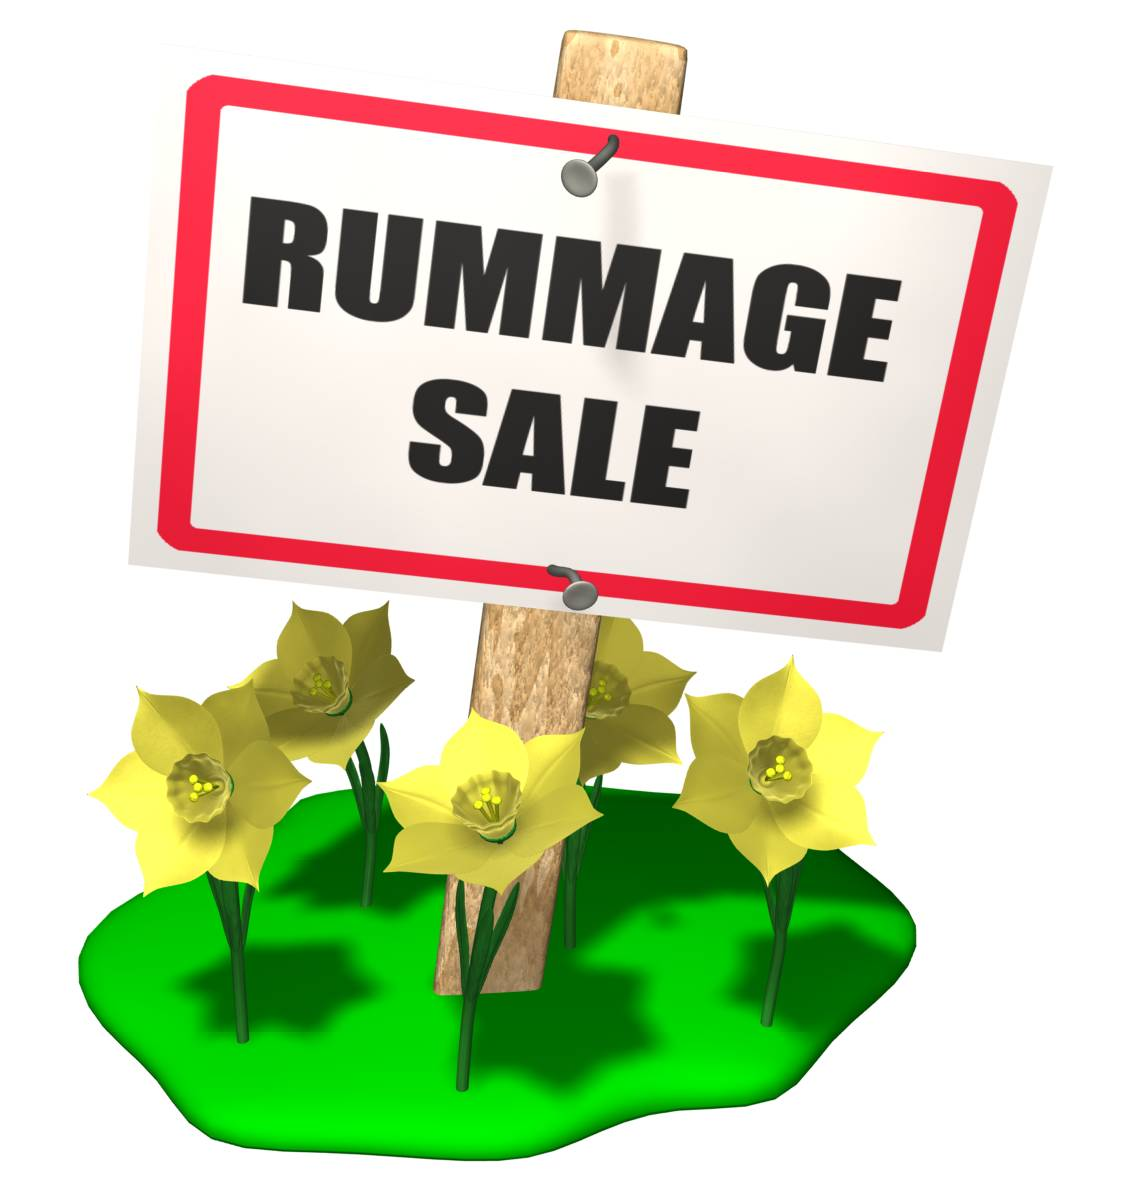 Rummage sale clipart free jpg freeuse download Free Rummage Sale Clipart, Download Free Clip Art, Free Clip ... jpg freeuse download